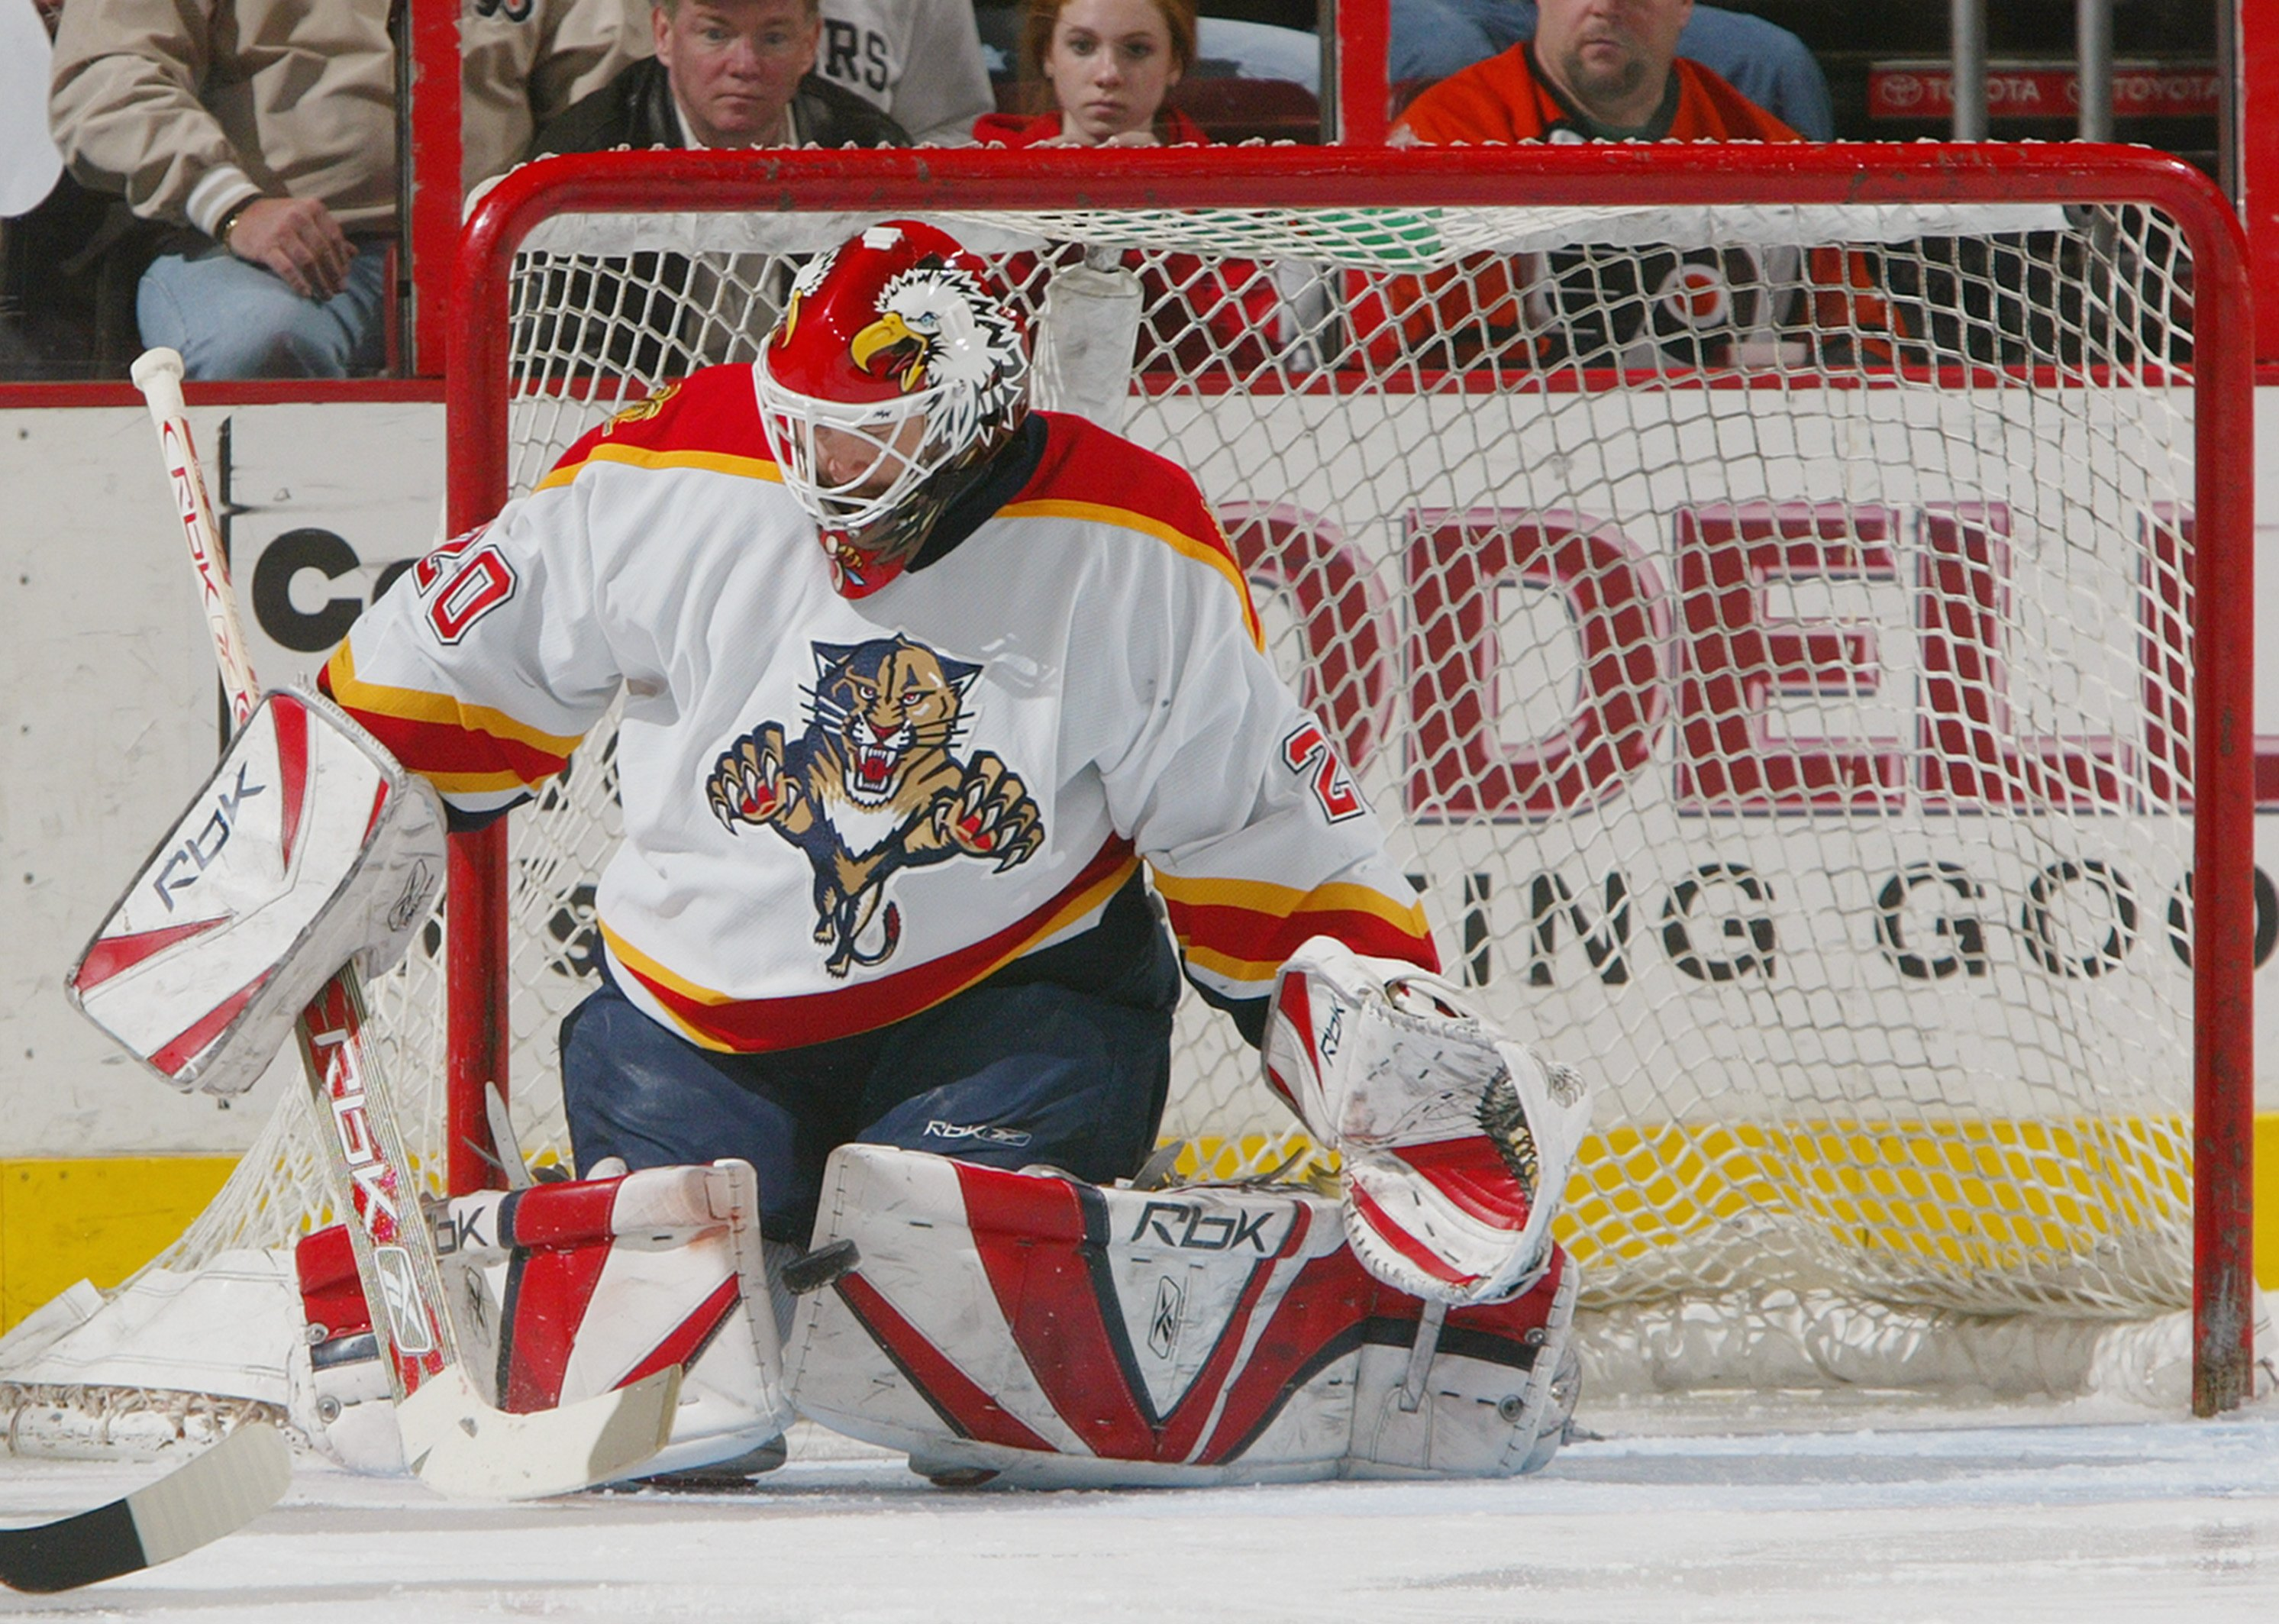 PHILADELPHIA - MARCH 20:  Goaltender Ed Belfour #20 of the Florida Panthers makes a pad save against the Philadelphia Flyers during their NHL game on March 20, 2007 at the Wachovia Center in Philadelphia, Pennsylvania.  The Panthers defeated the Flyers 4-